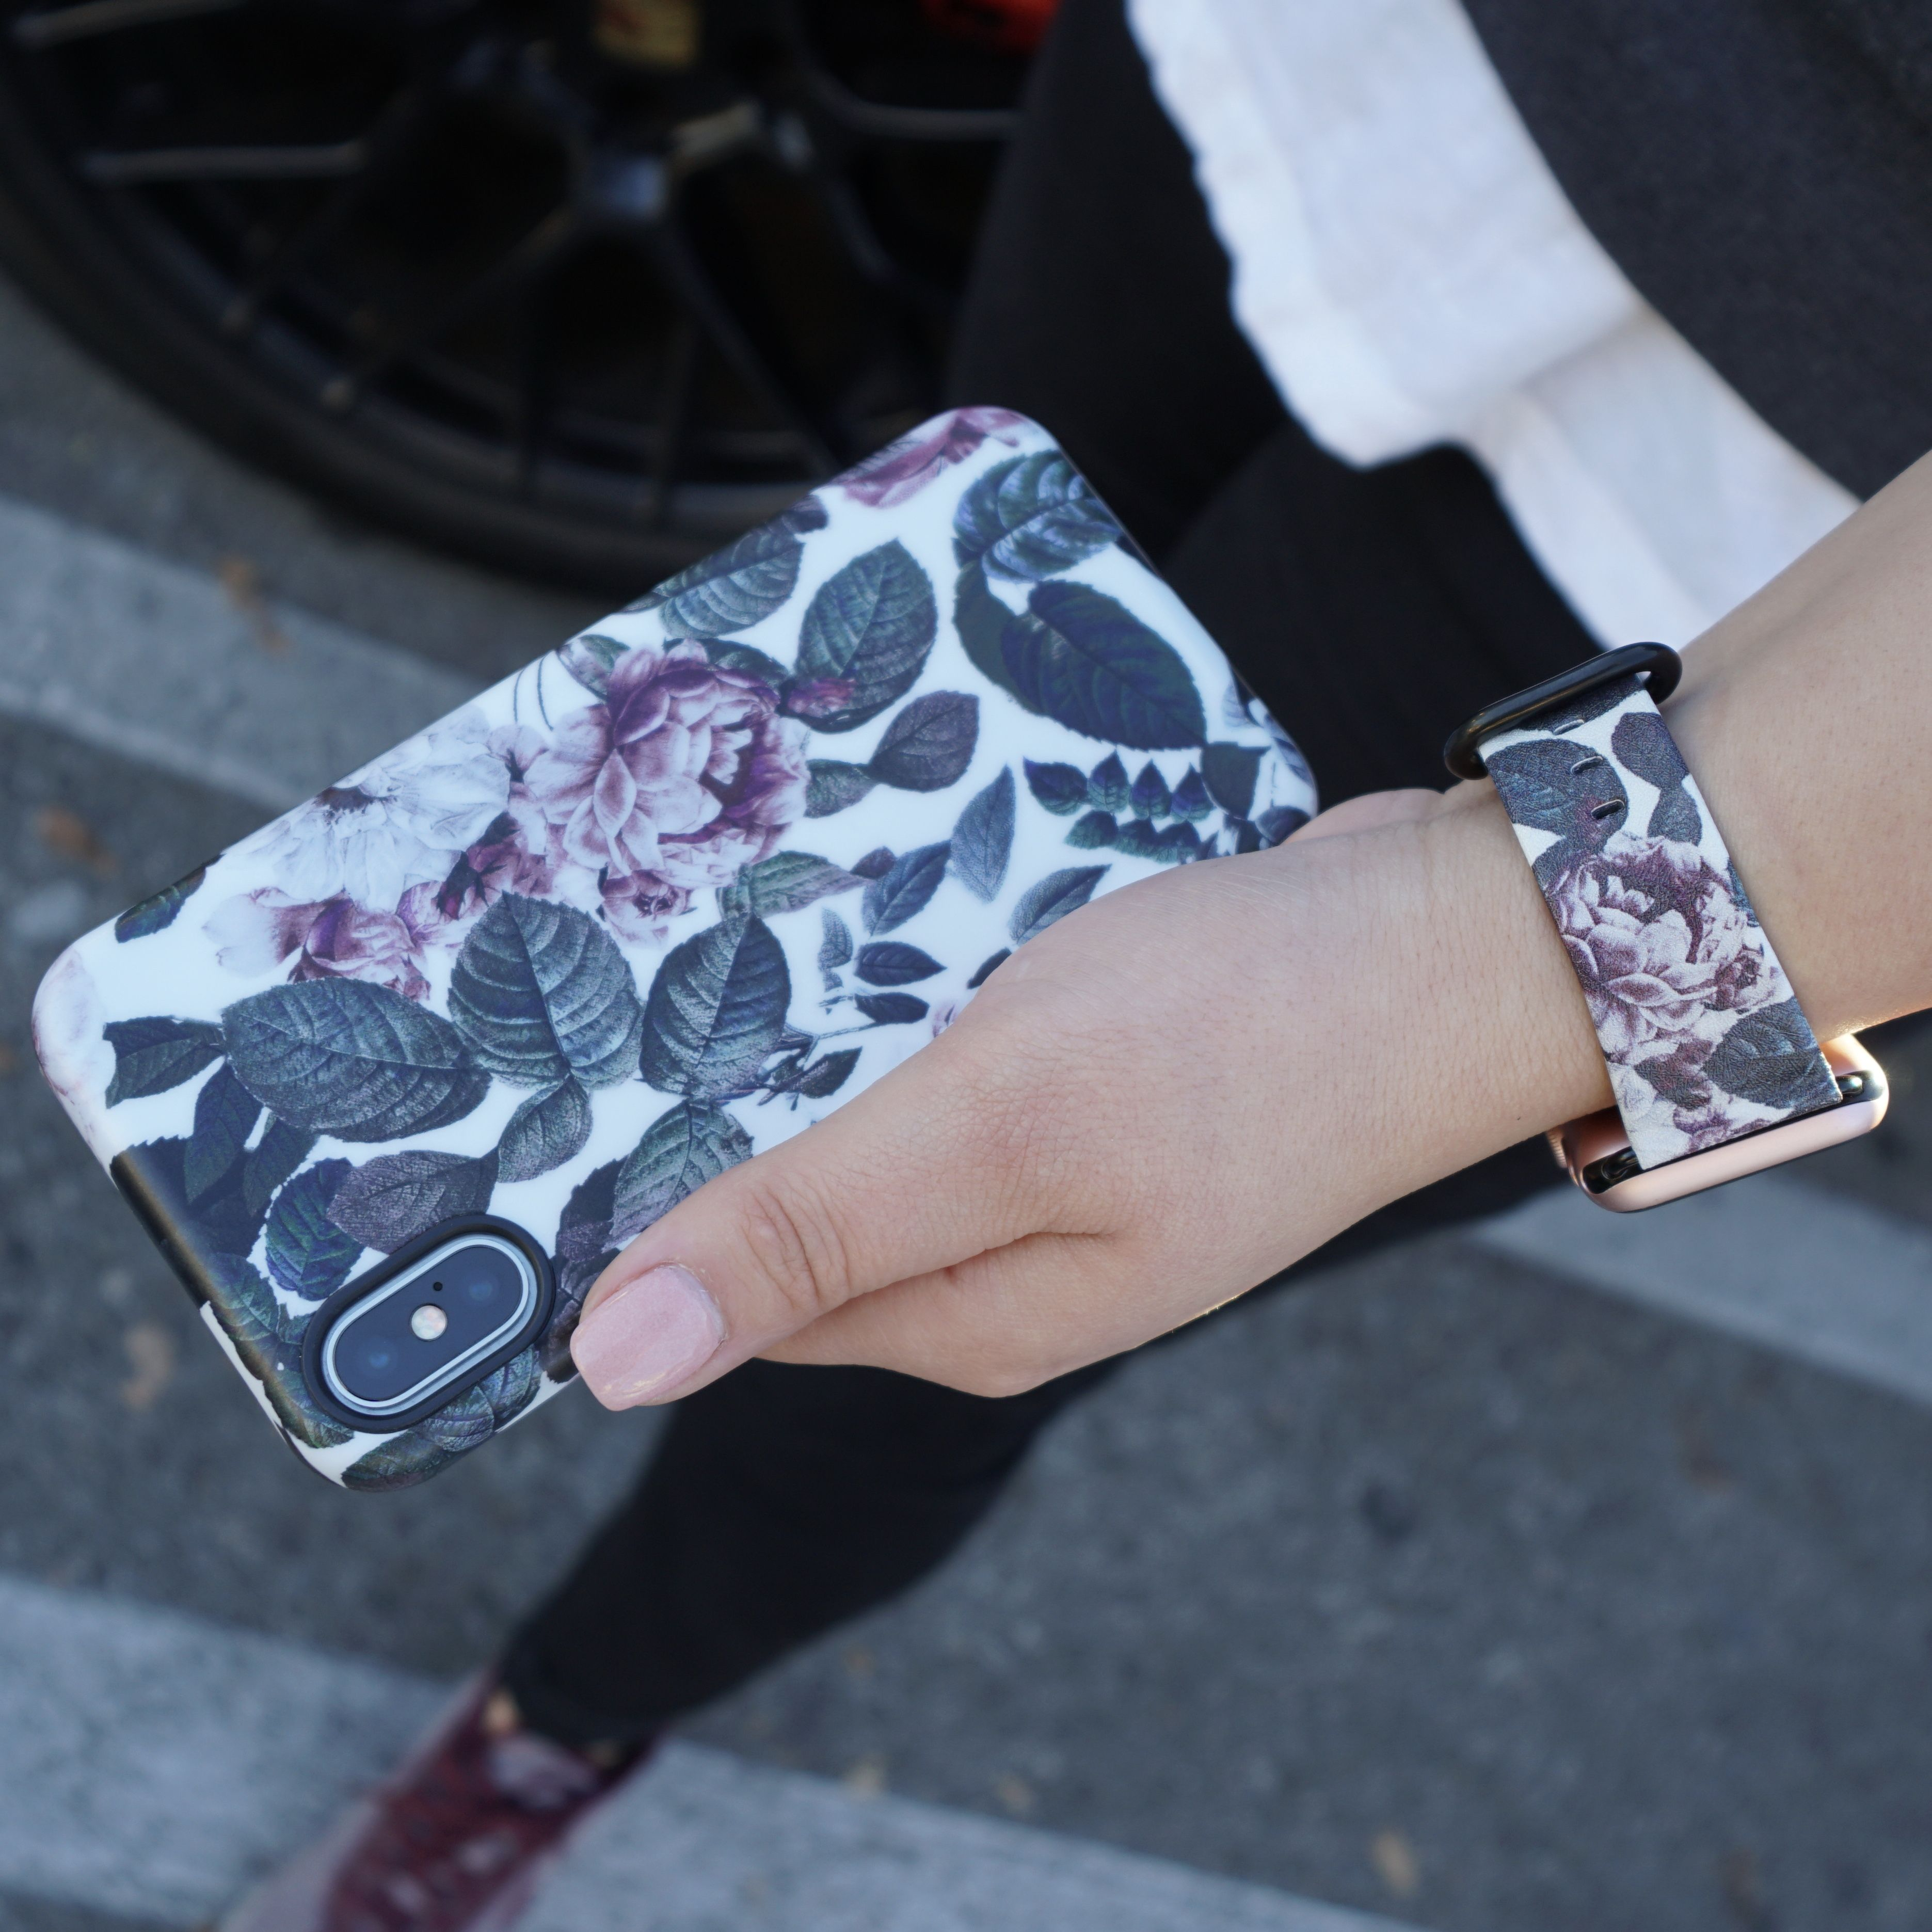 sale retailer b611c c84c5 Is that a matching watch band? Shadow Blossom Apple Watch Band for ...